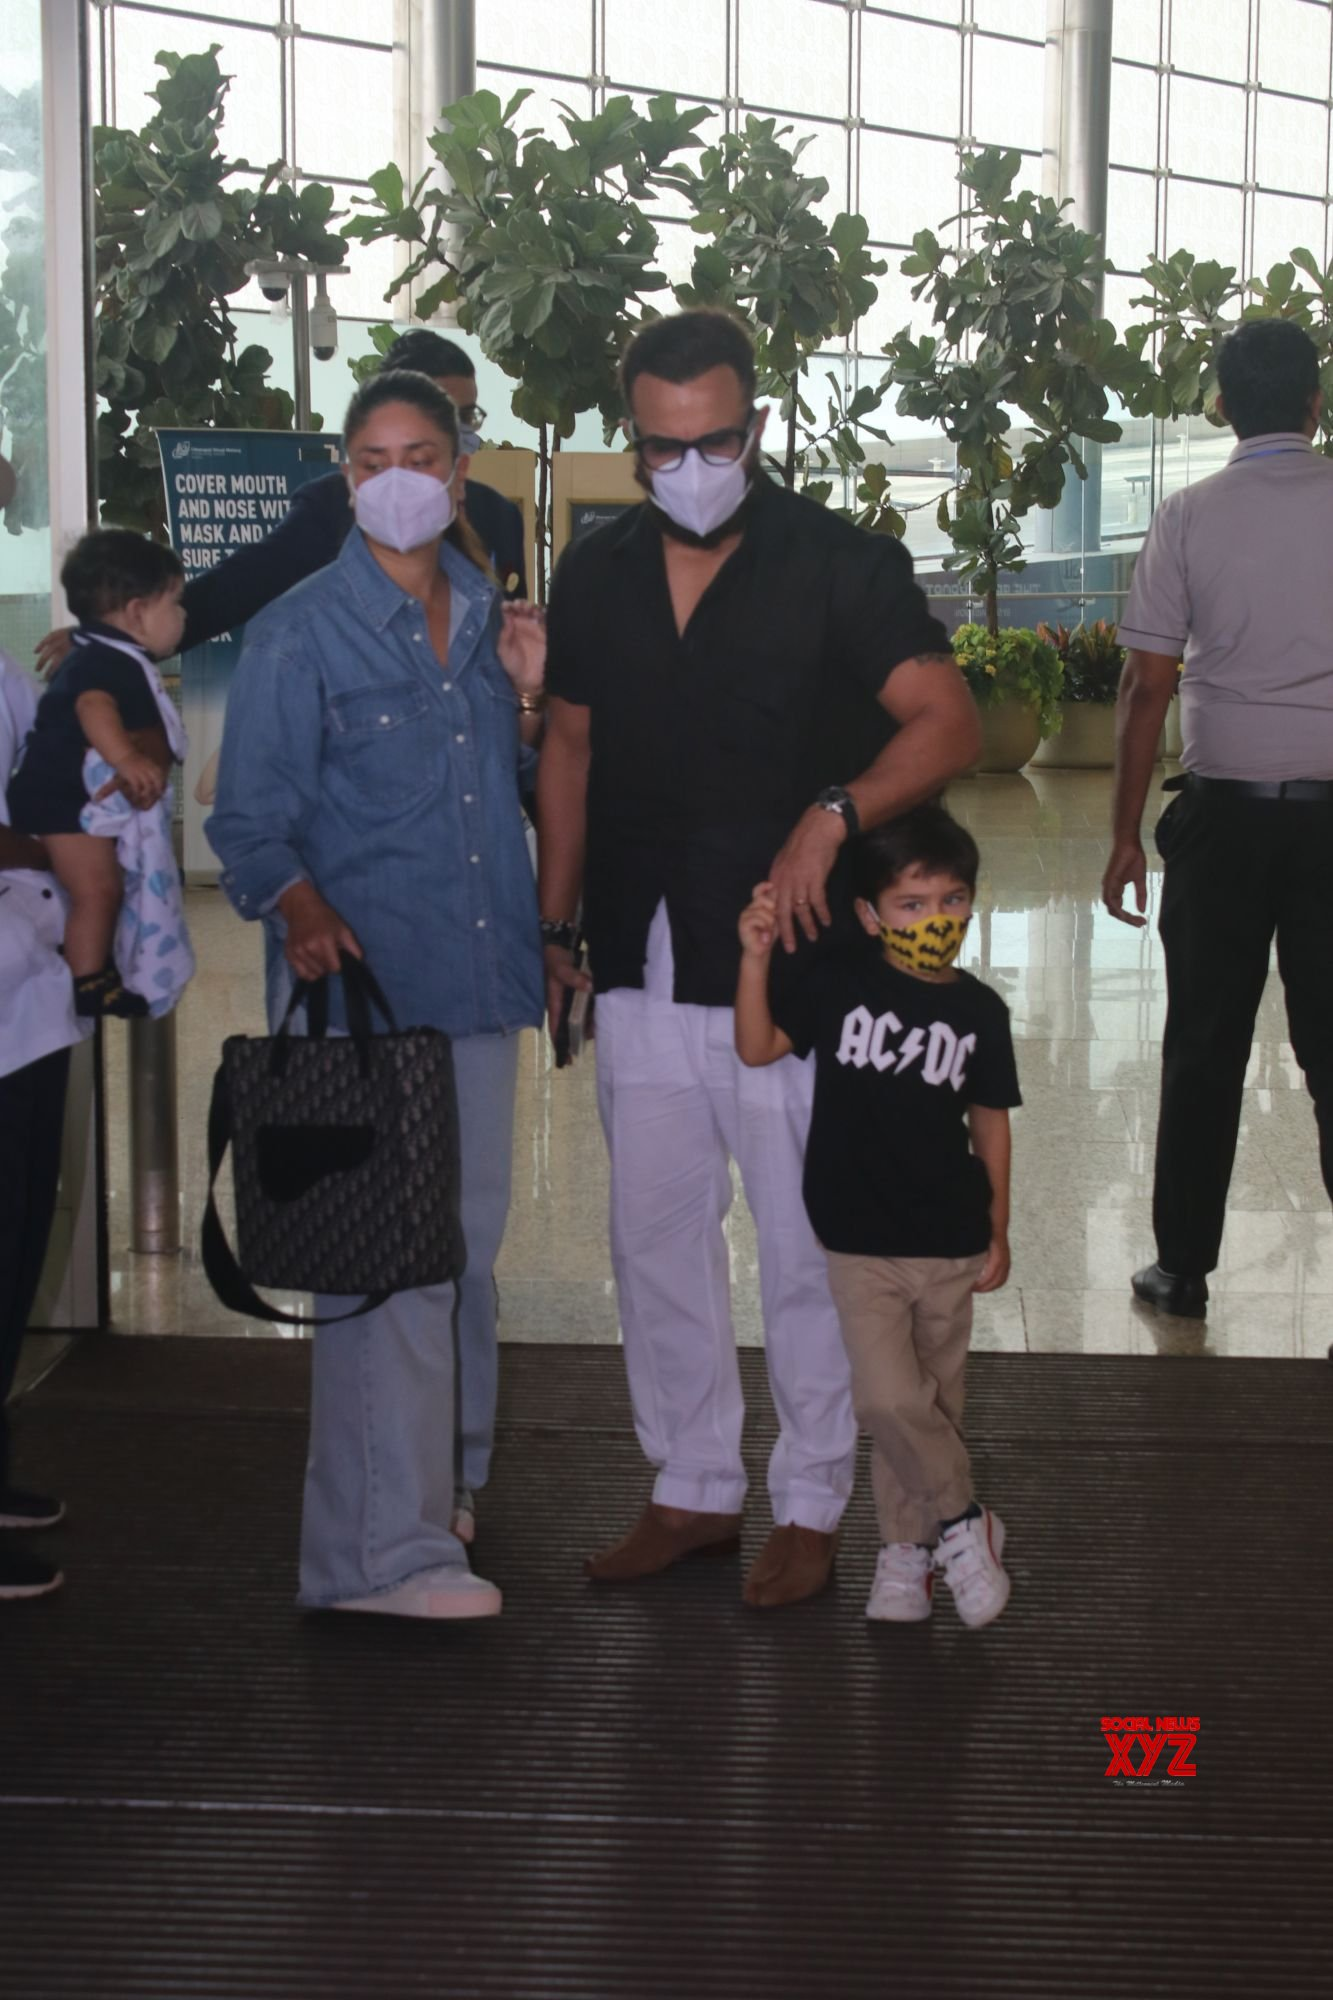 Saif Ali Khan And Kareena Kapoor With Family Spotted At Airport Departure Gallery